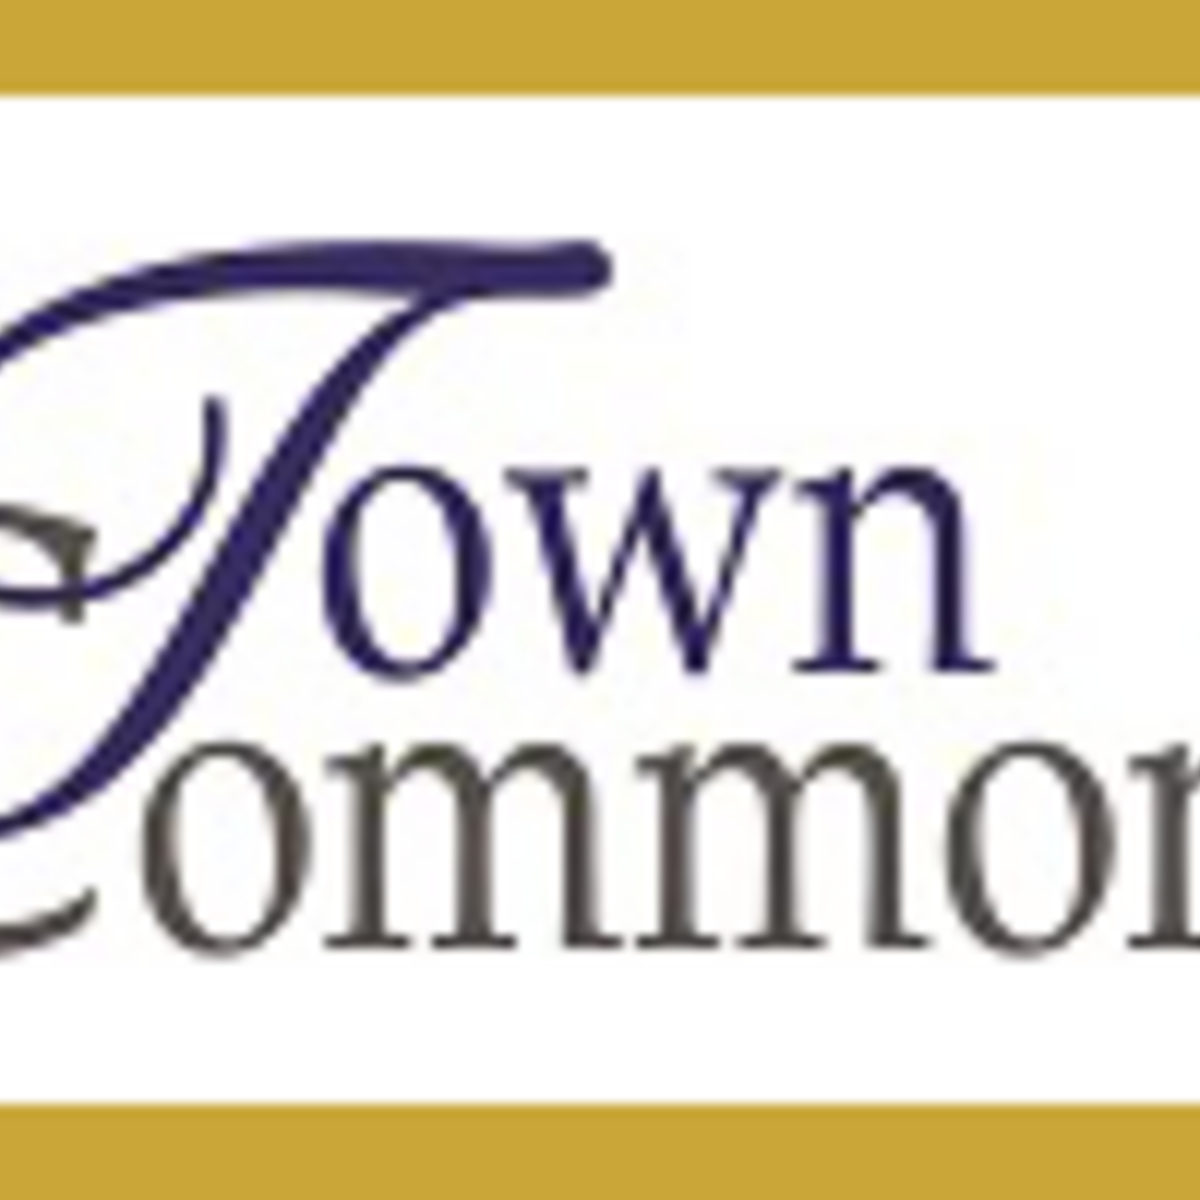 Apartments for Rent in Howell, MI | Town Commons Apartments - Home